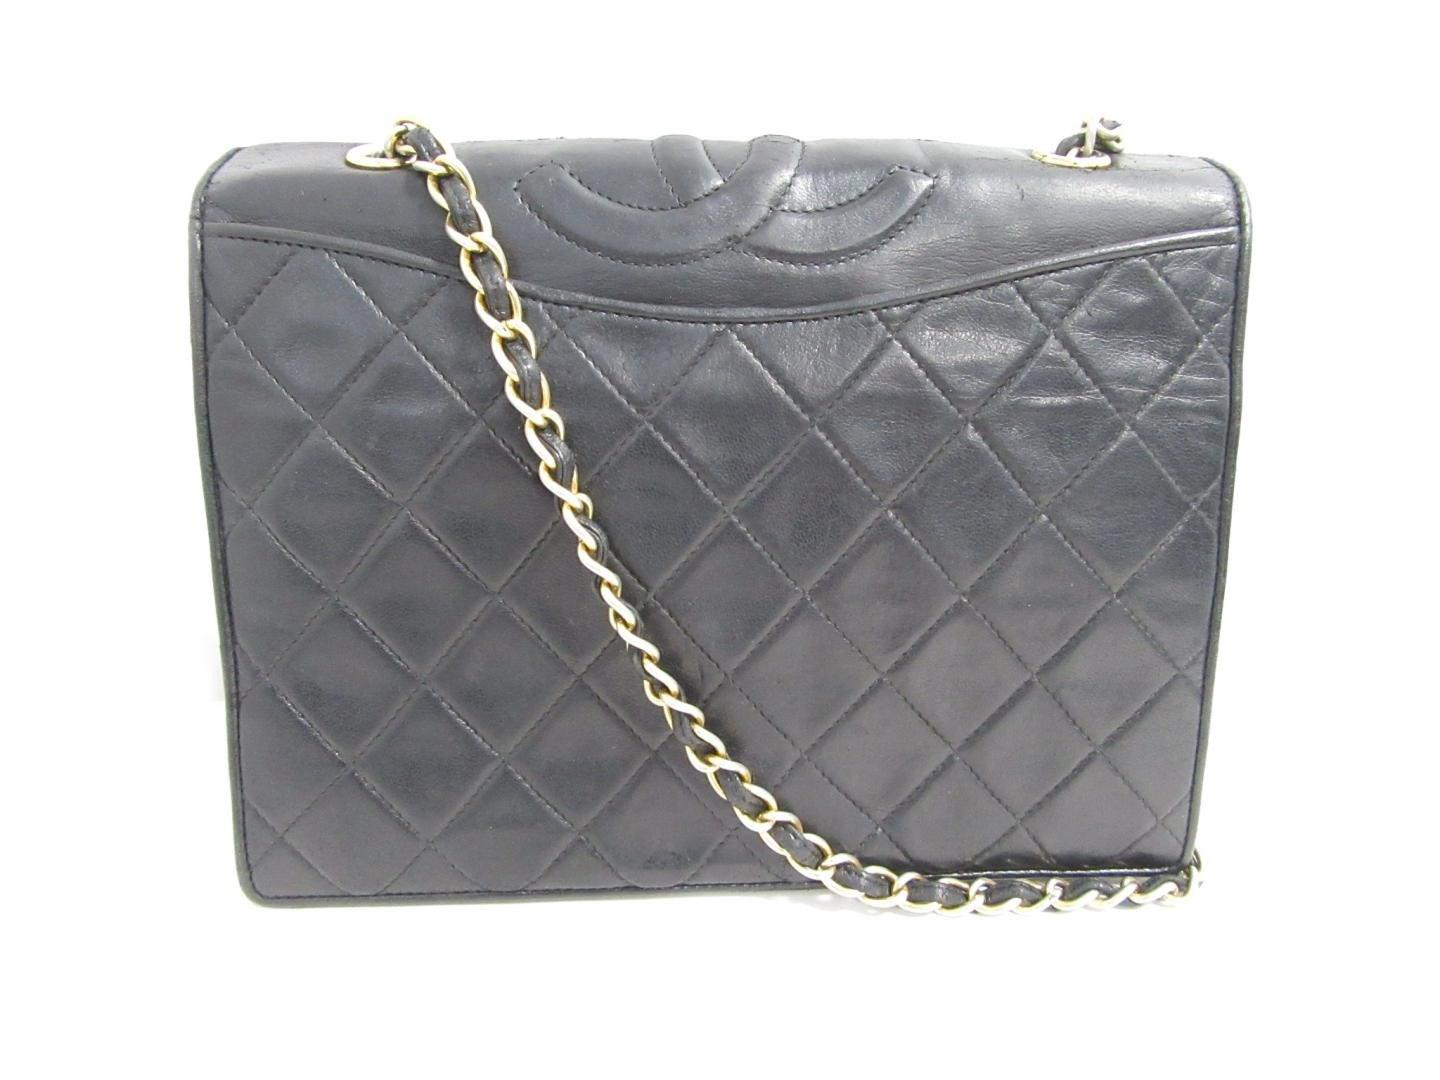 Lyst - Chanel Auth Matelasse Chain Shoulder Bag Lamb Leather Black ... 70130692a8a23